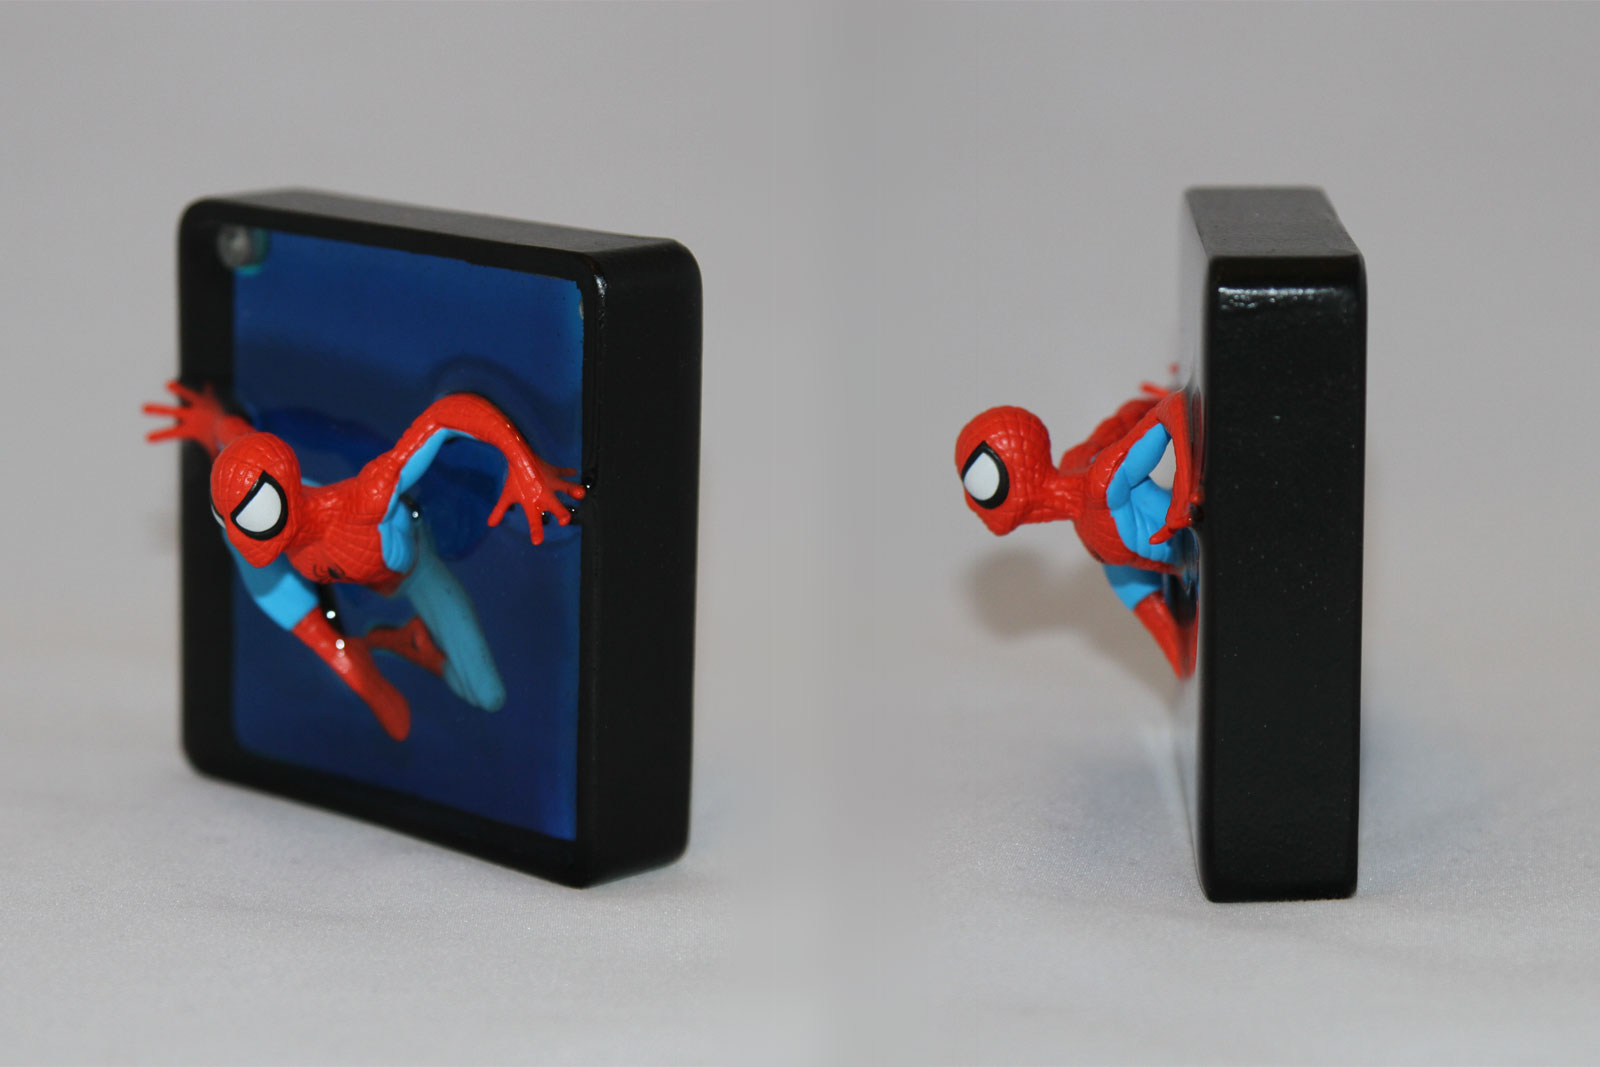 Comic spyder man by Comix Zurich